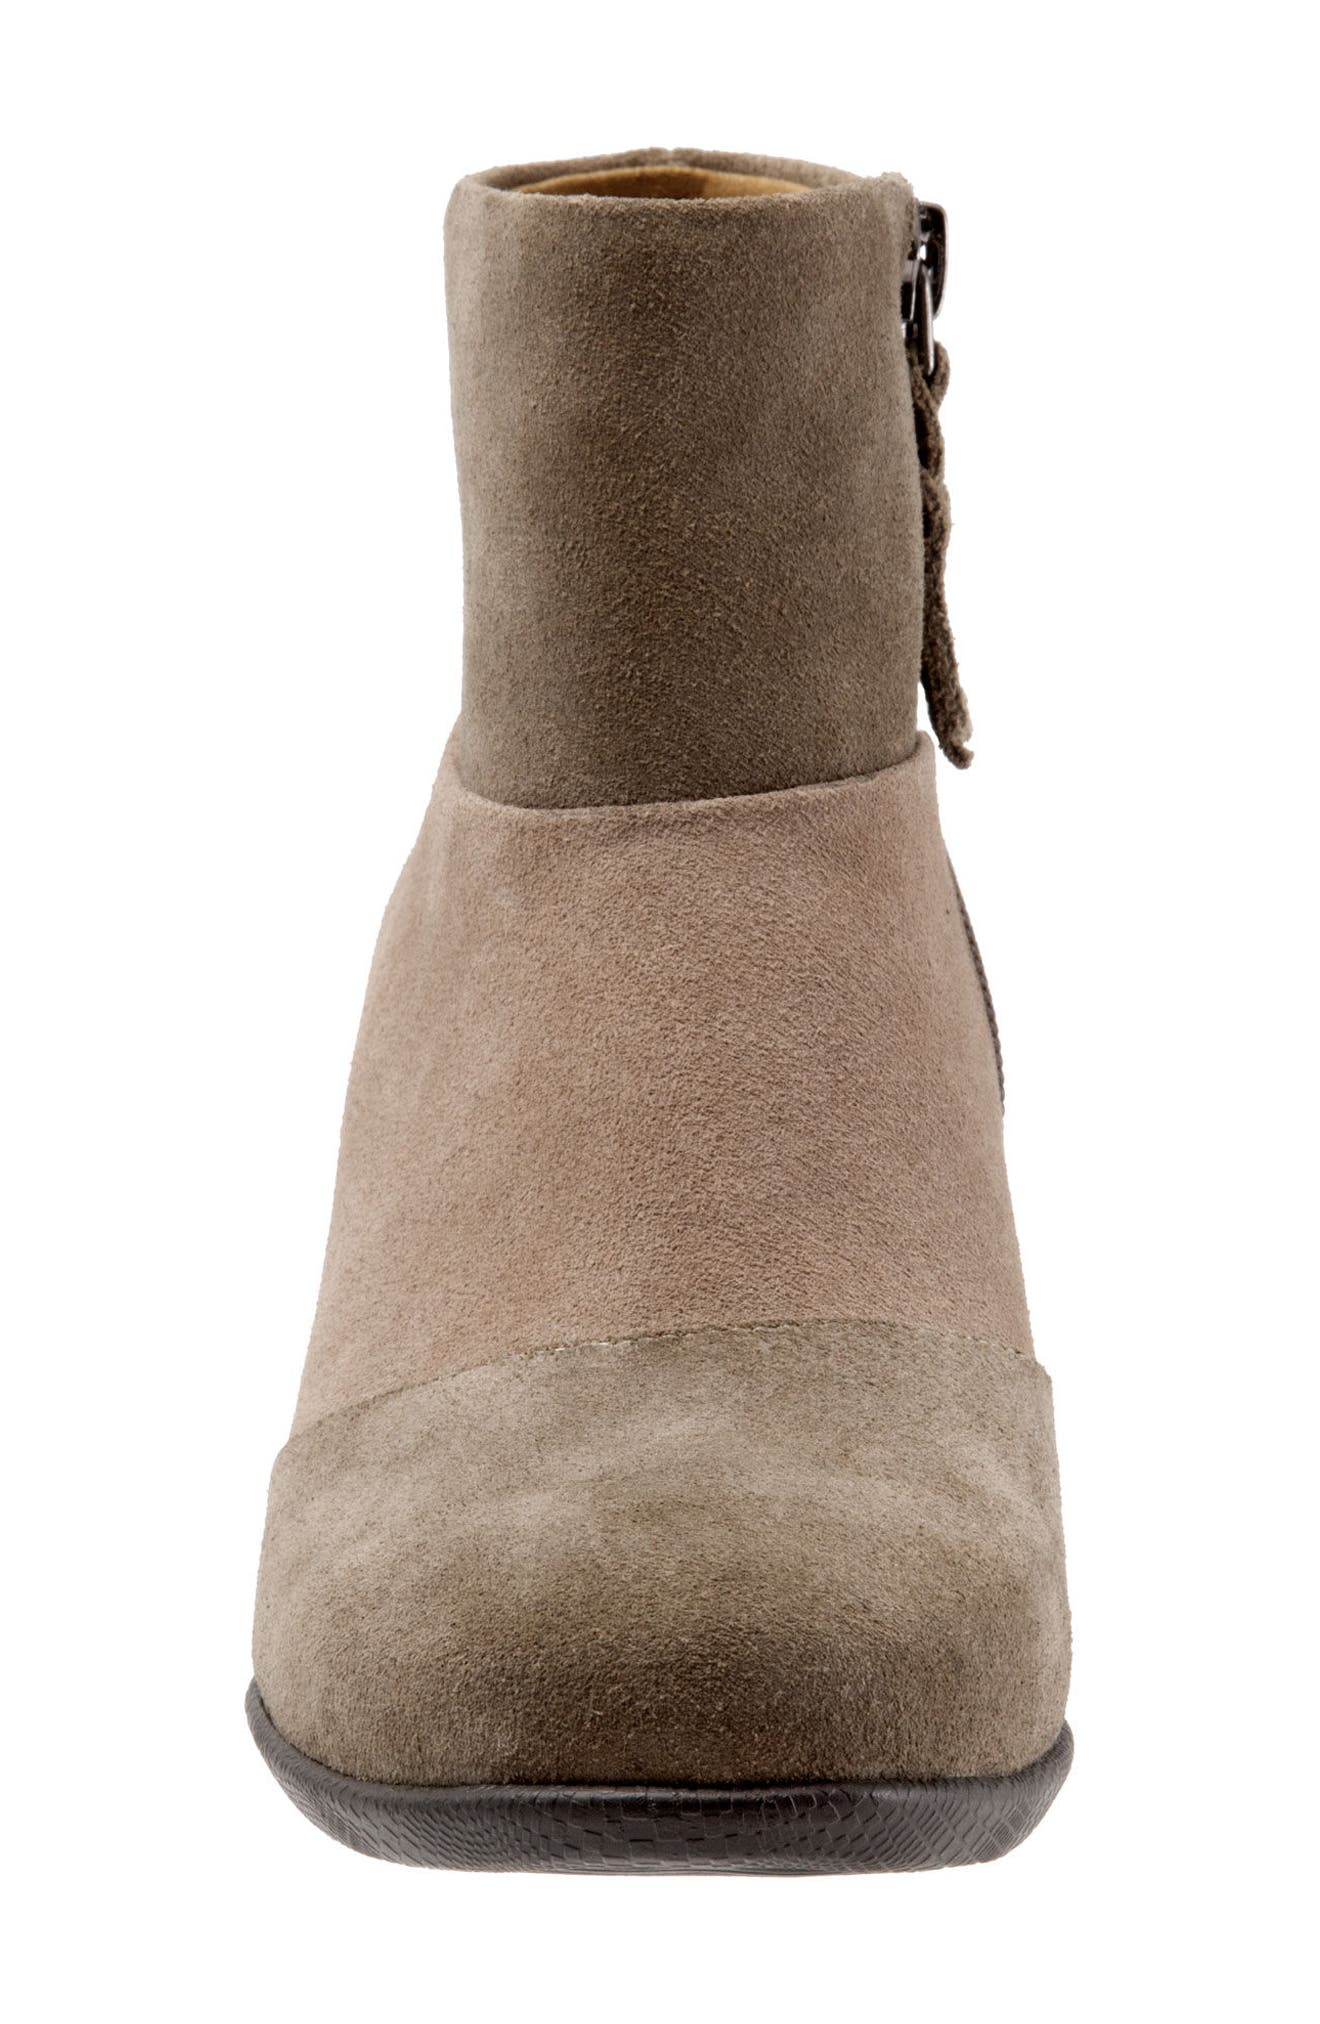 Inspire Bootie,                             Alternate thumbnail 4, color,                             Dark Taupe Suede